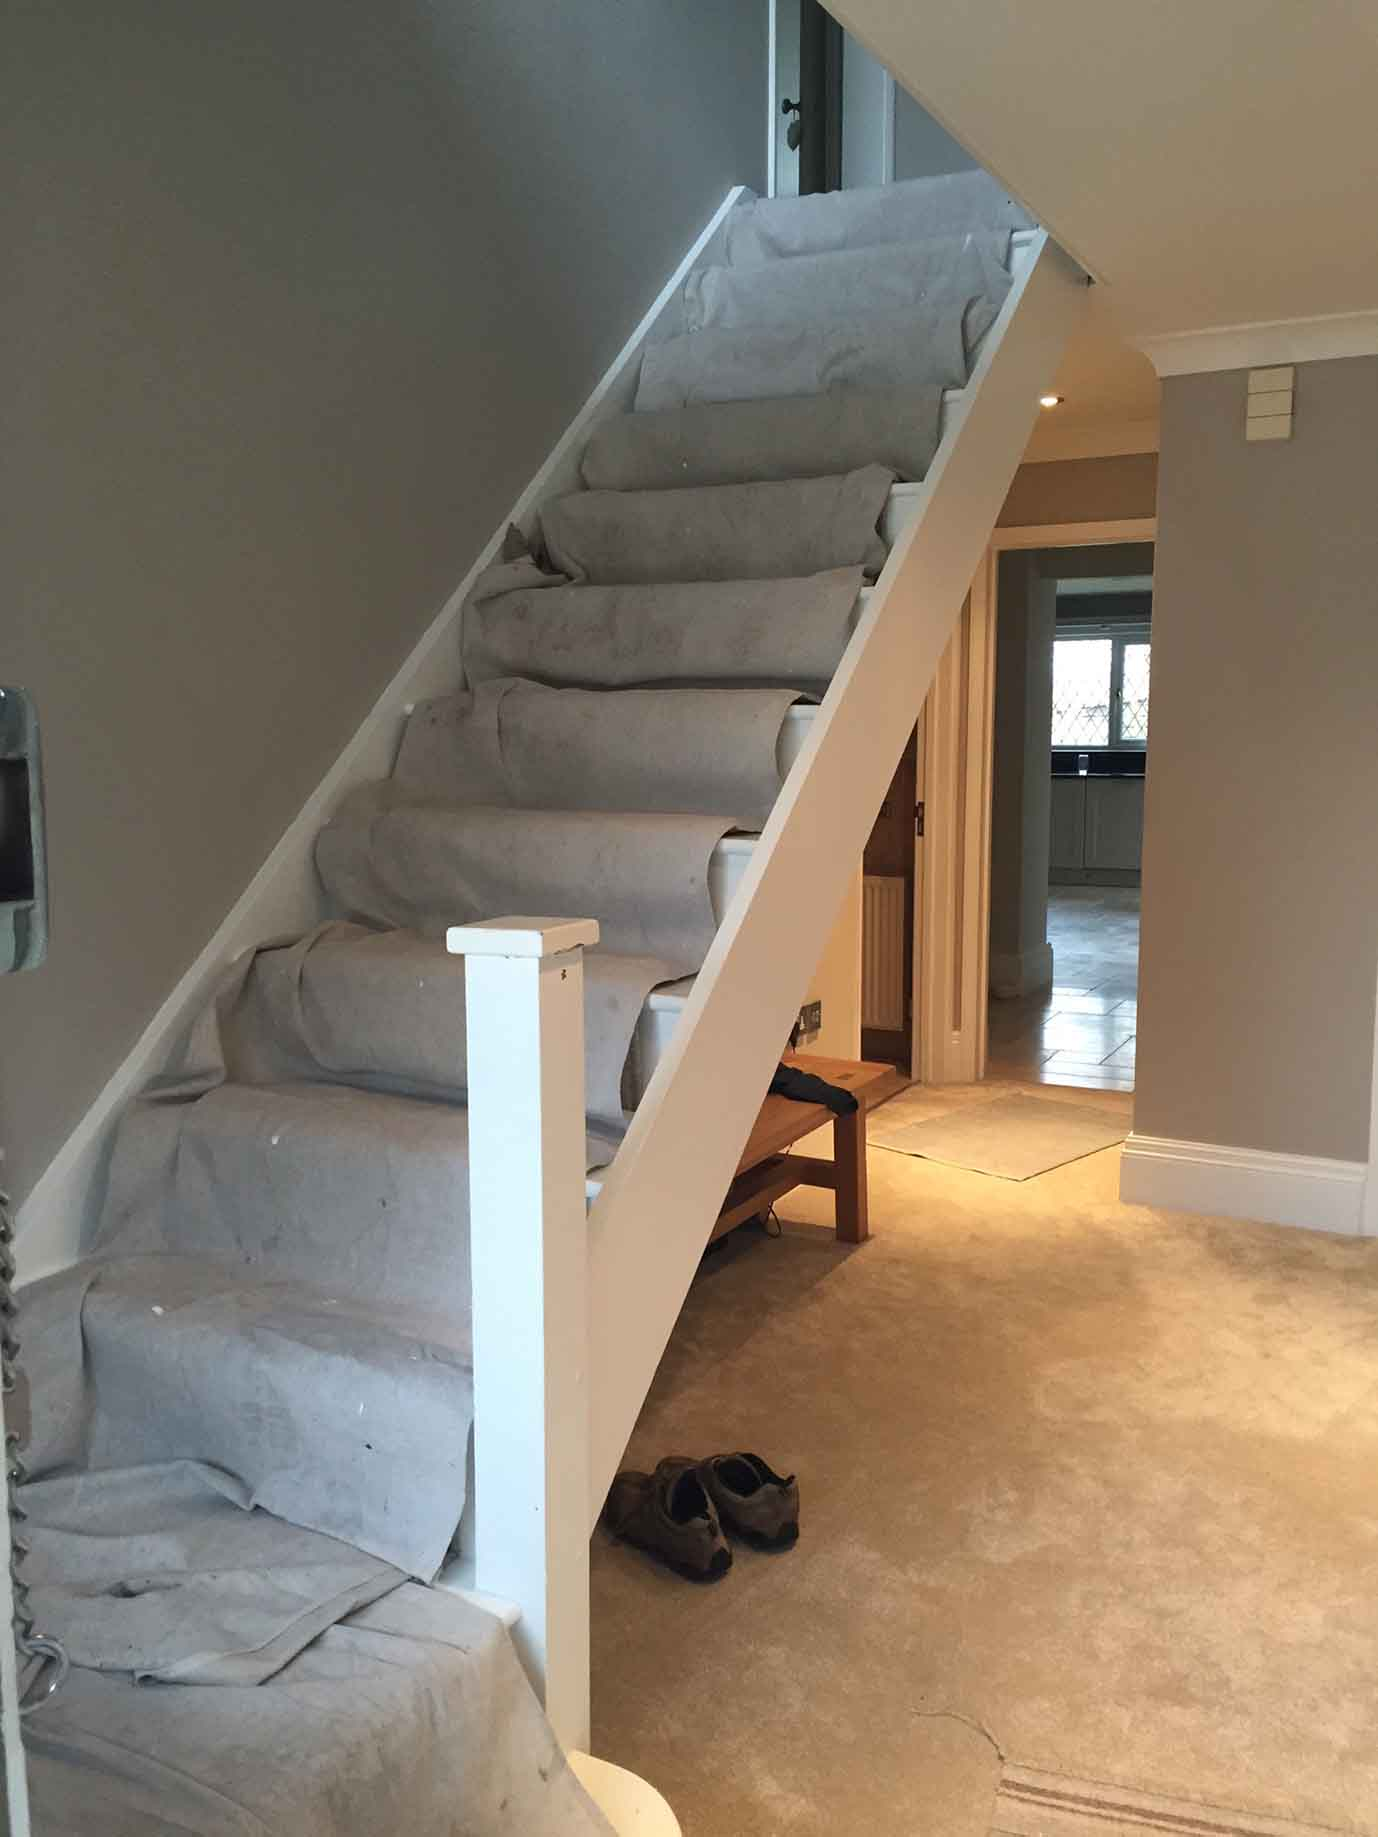 undecorated stairs